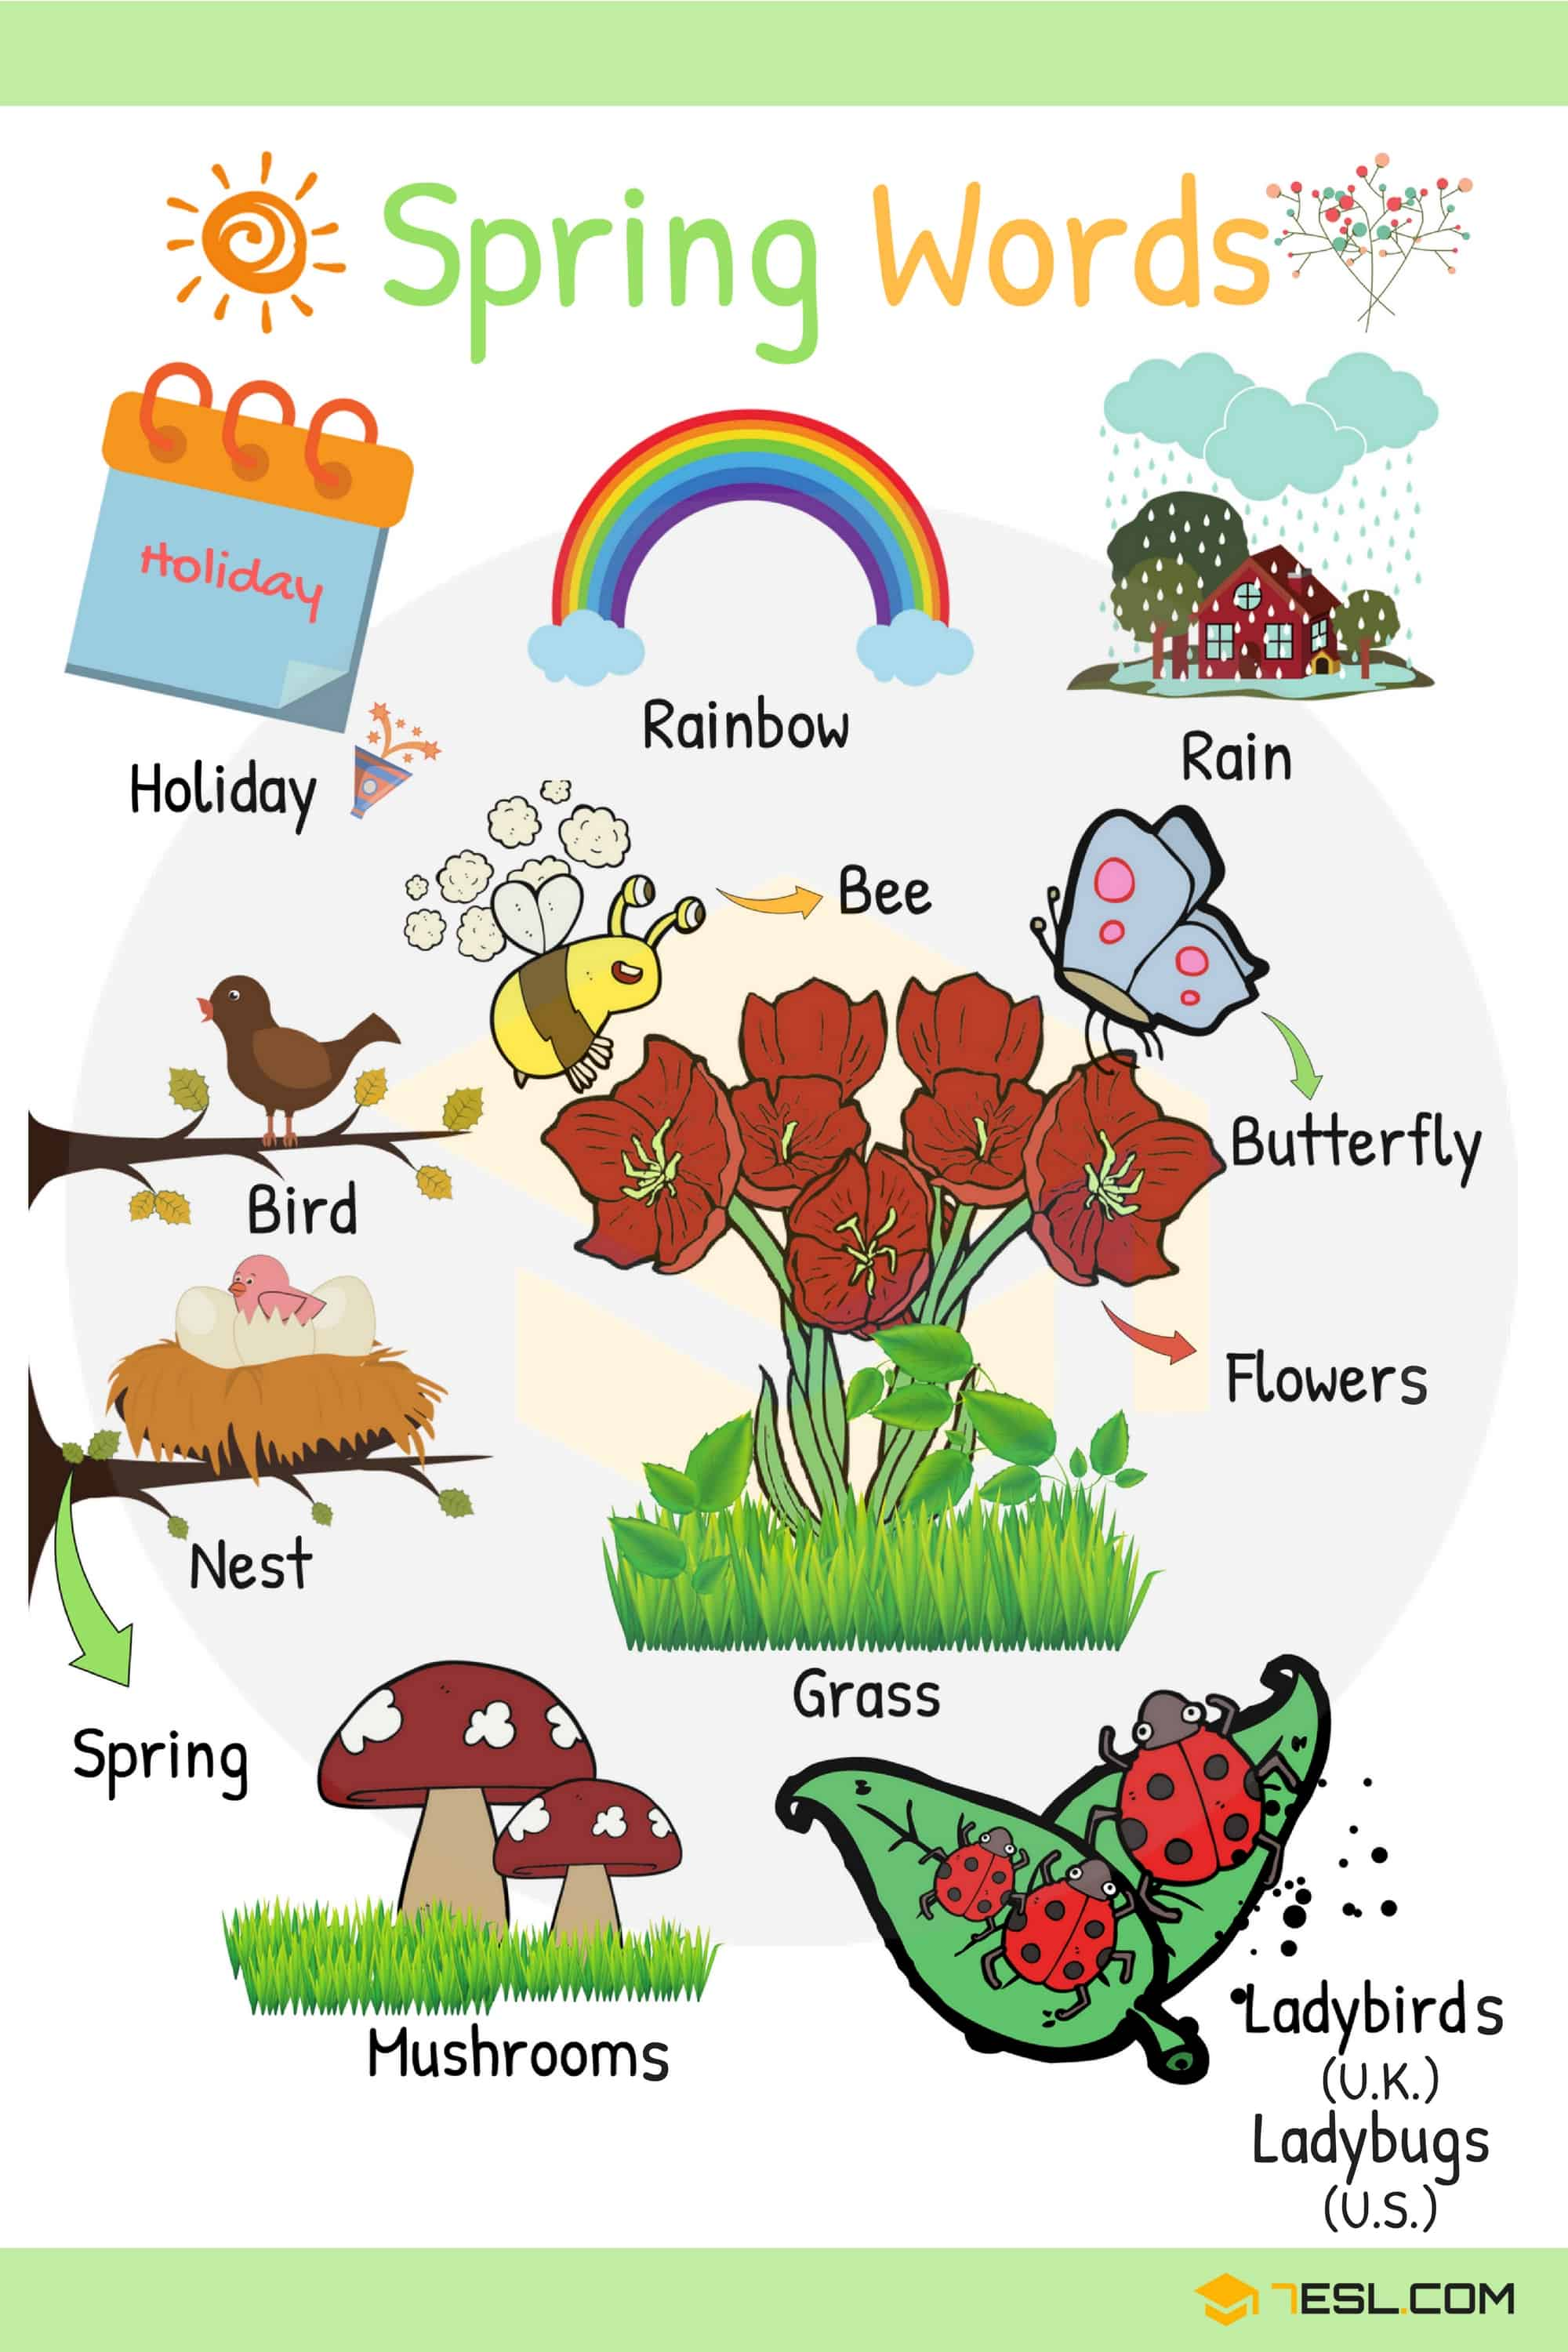 Spring Words: Learn Spring Vocabulary with Pictures